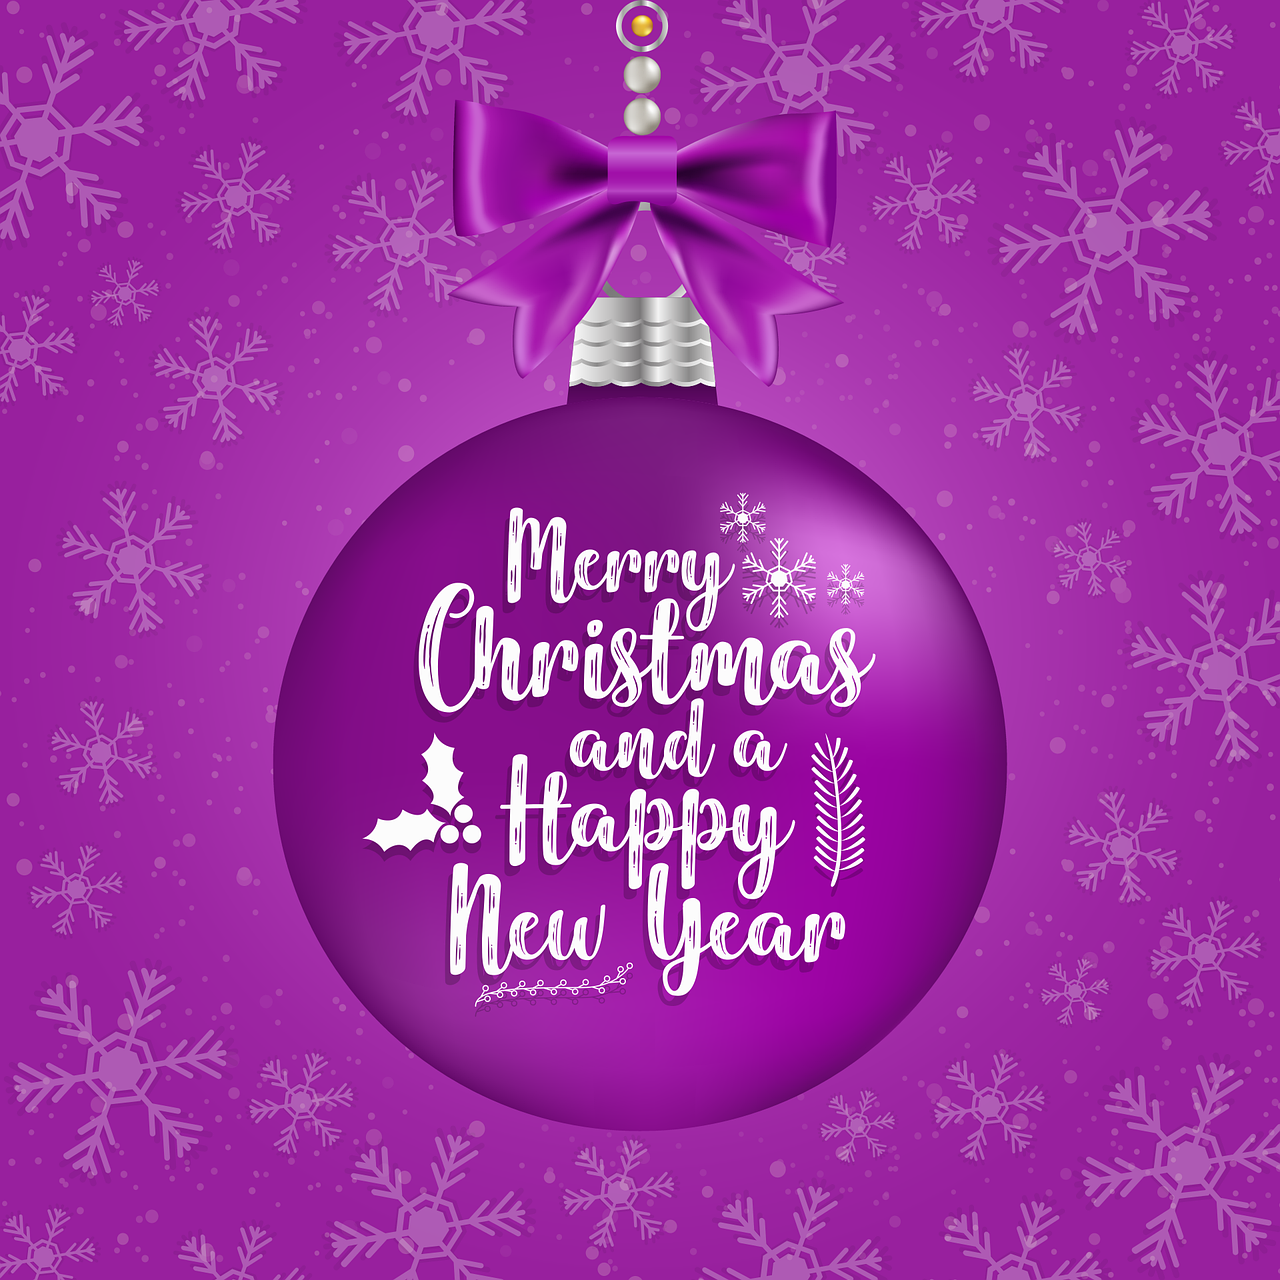 Download Merry Christmas And Happy New Year Card